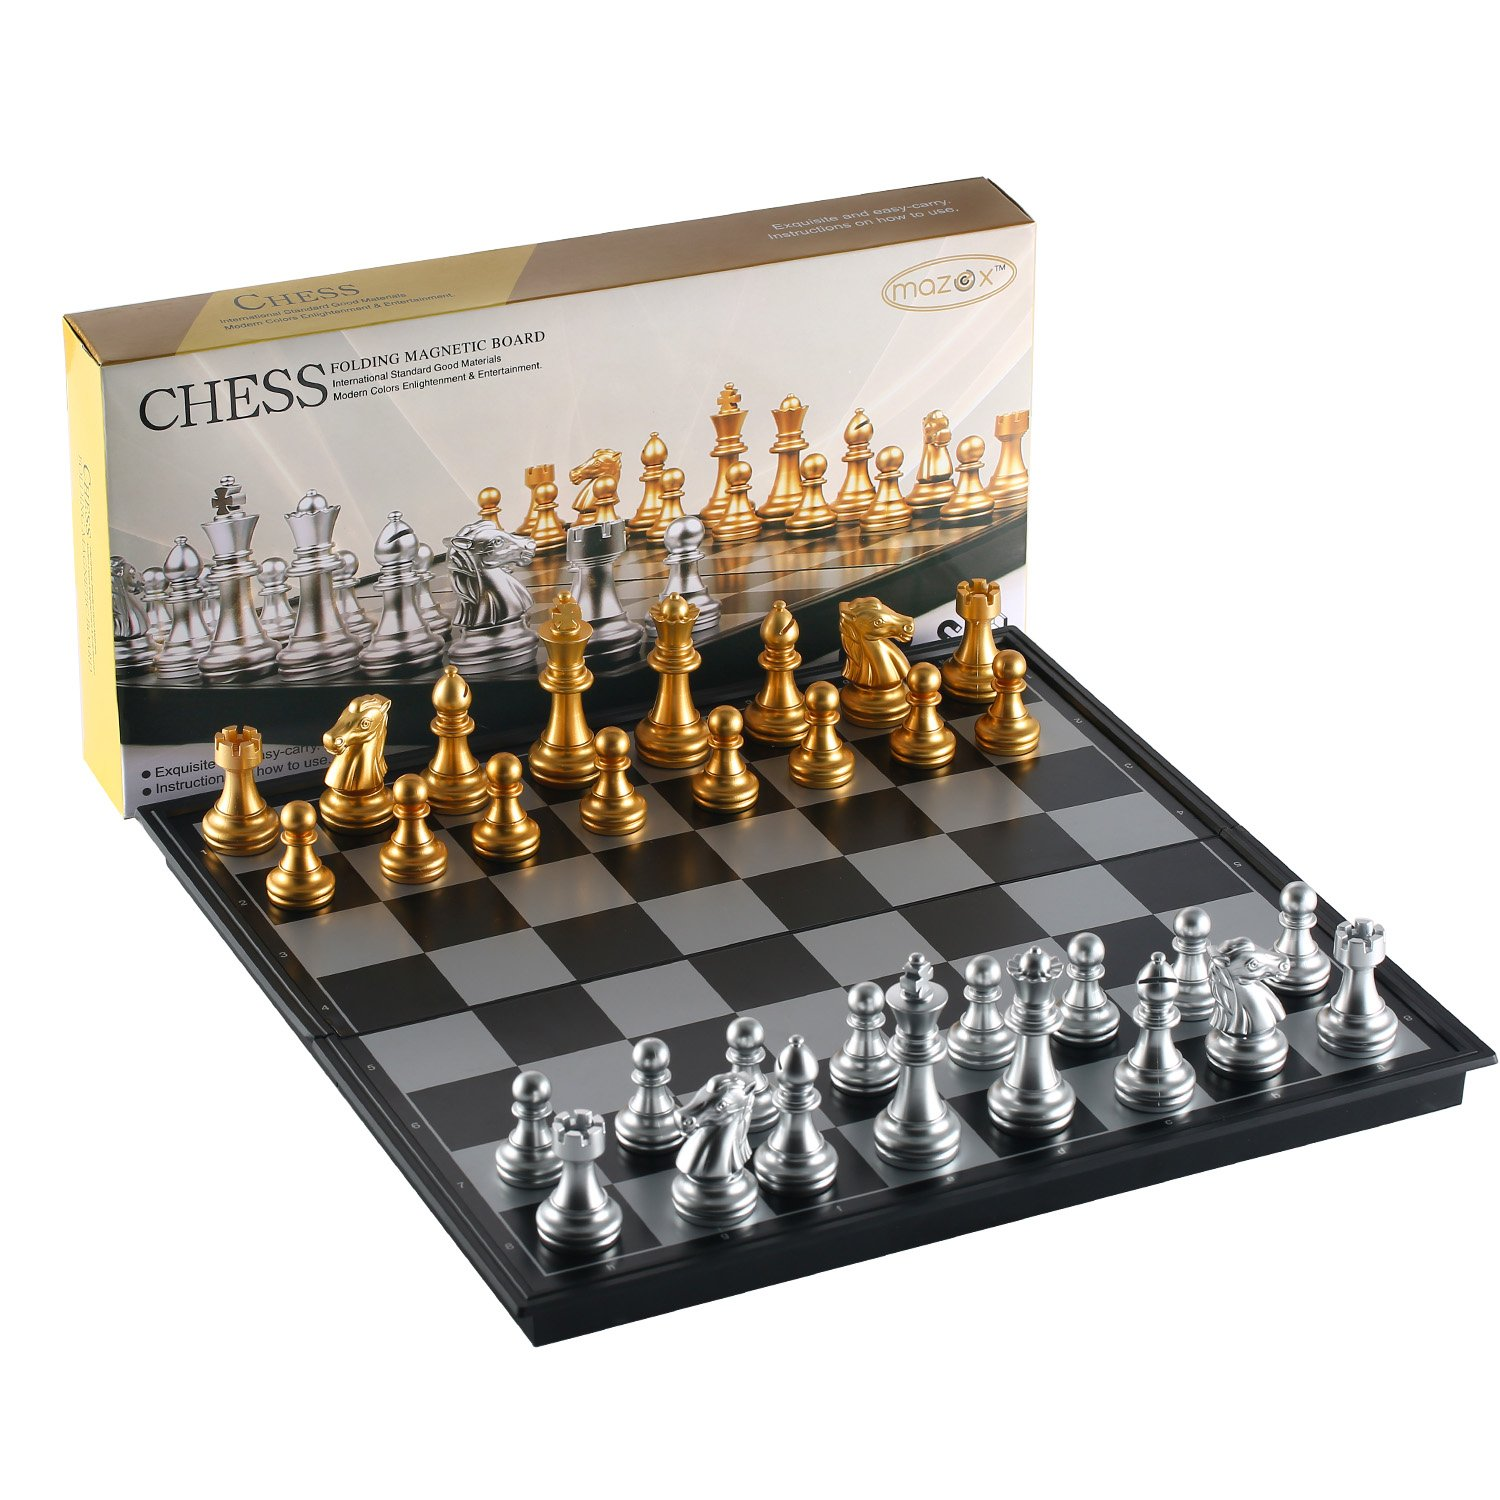 Magnetic Folding Chess Set for by MAZEX Kids or Adults Chess Board Game 9.8X9.8X0.8 Inch (Black&White Chess Pieces)